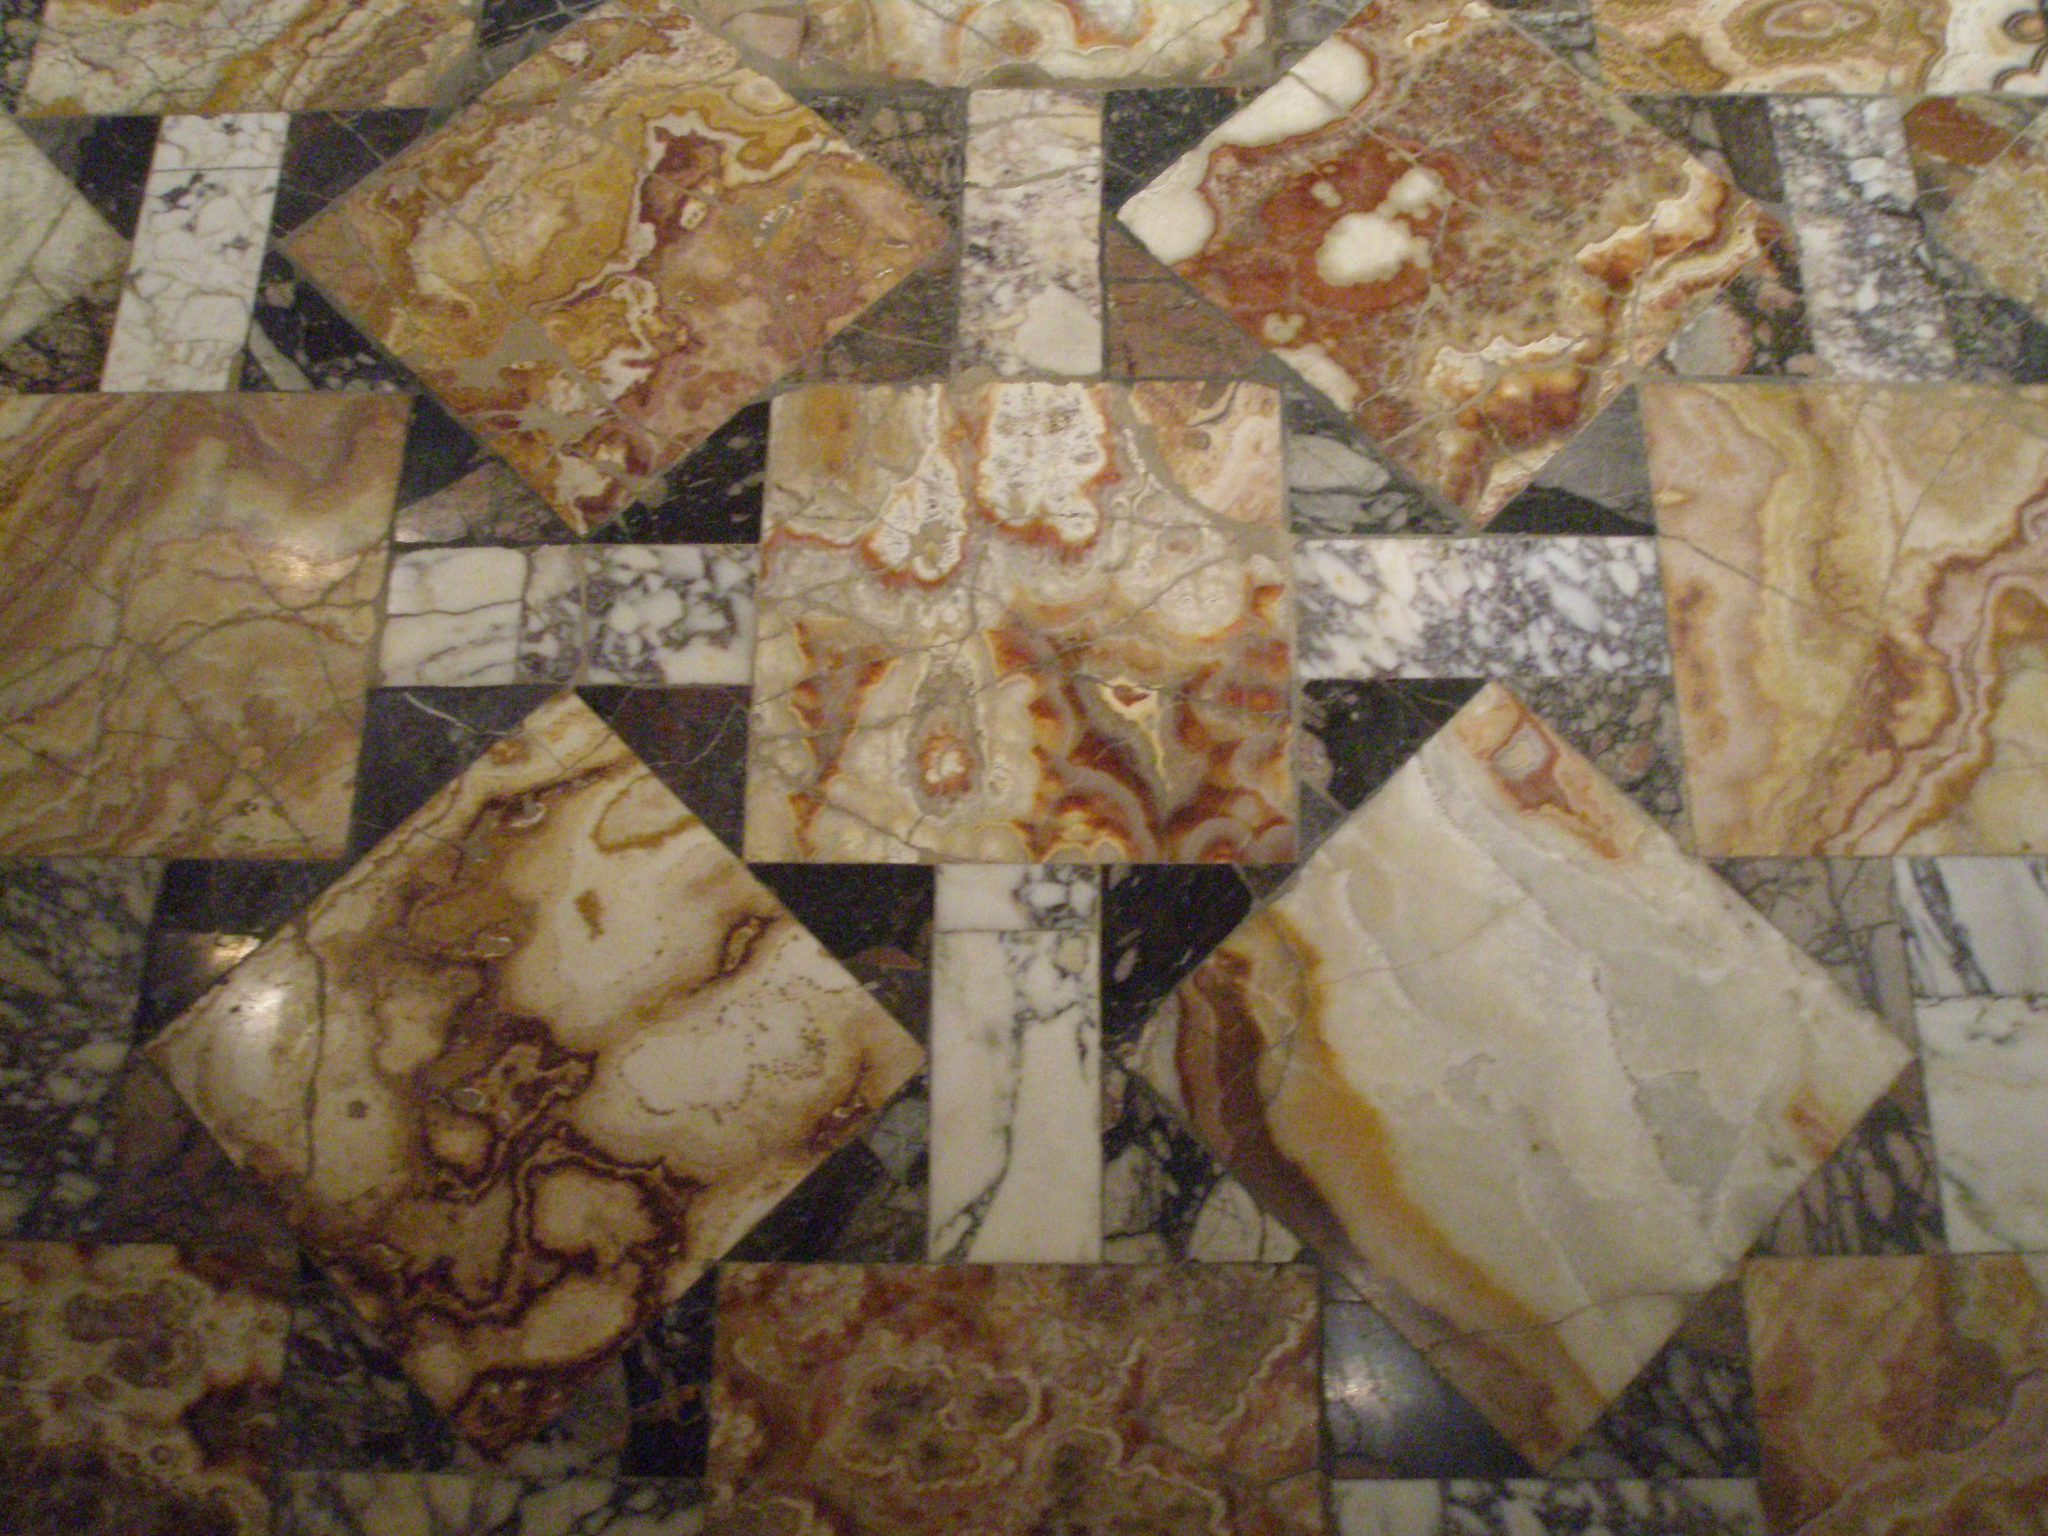 Displayed in the Palazzo dei Conservatori's Halls of the Horti Lamaini: A section of the di Palombara alabaster floor, from a Roman villa dated 3 AD. The fragment comes from a floor that was reputed to measure 79 meters long.